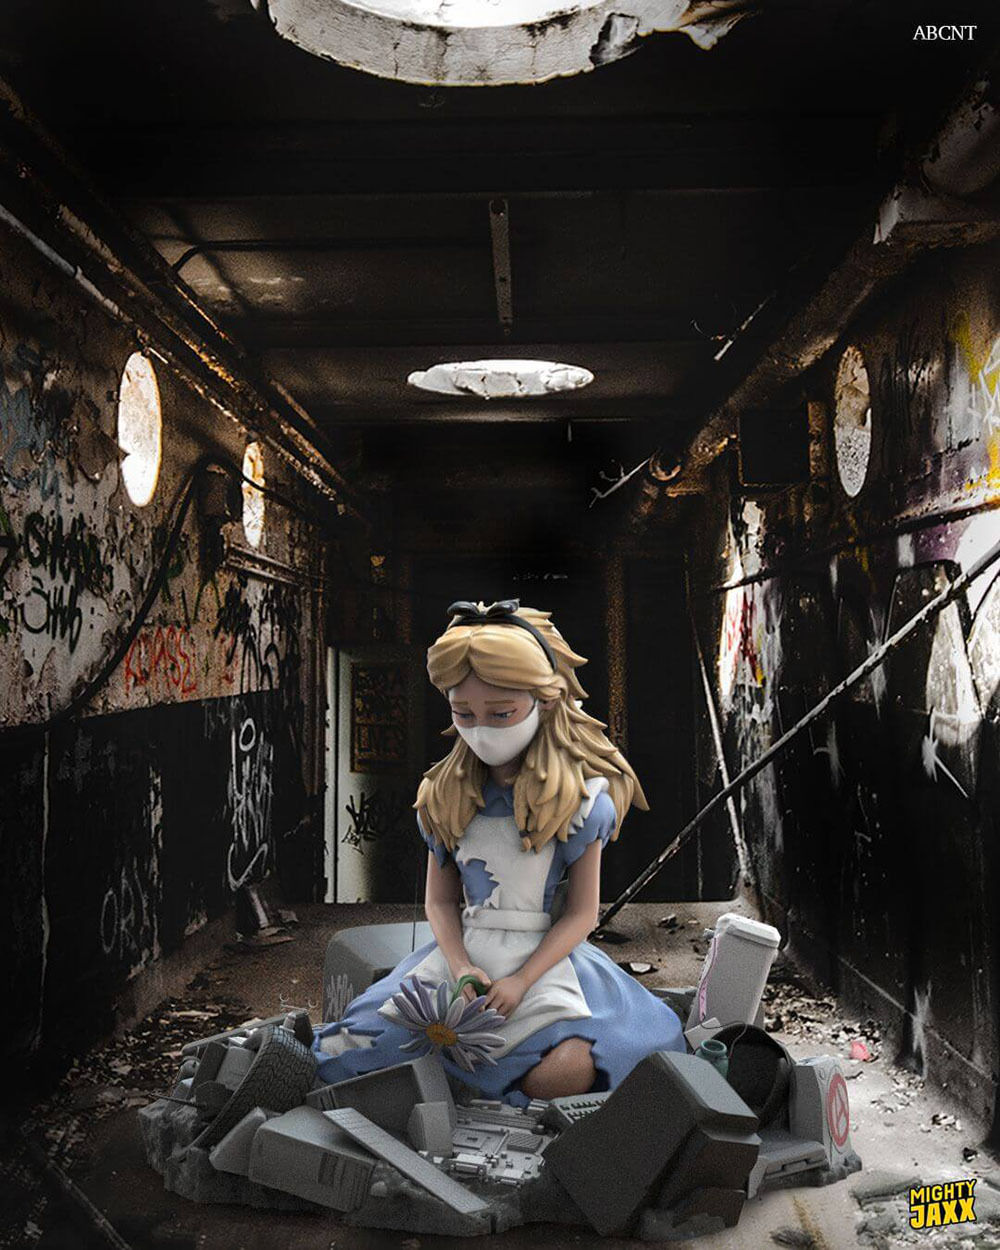 Alice in Wasteland by ABCNT_e0118156_03255514.jpg